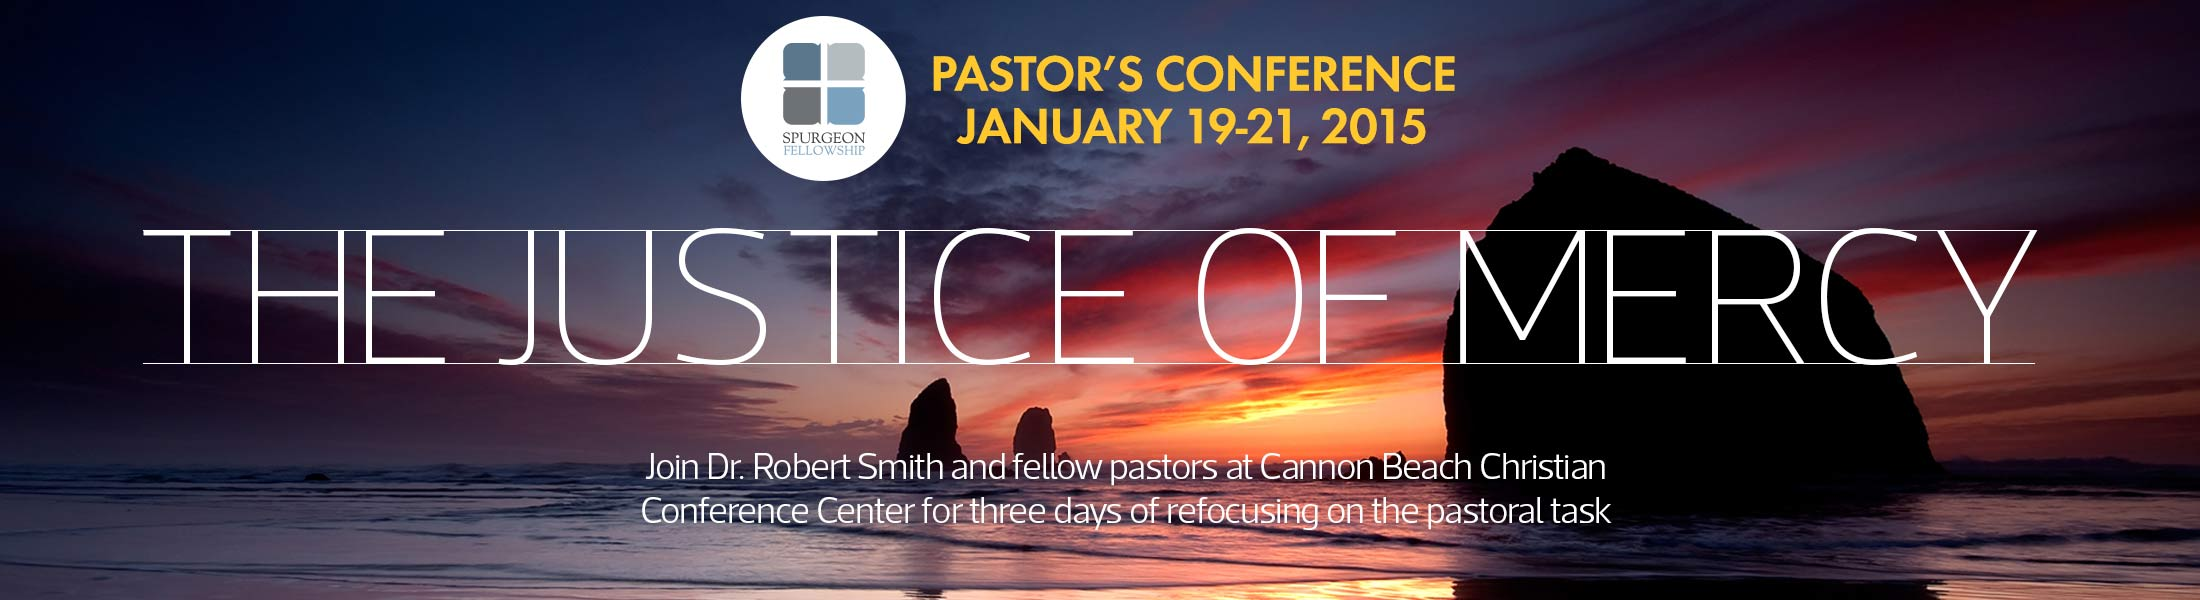 Spurgeon Fellowship Pastors Conference 2015